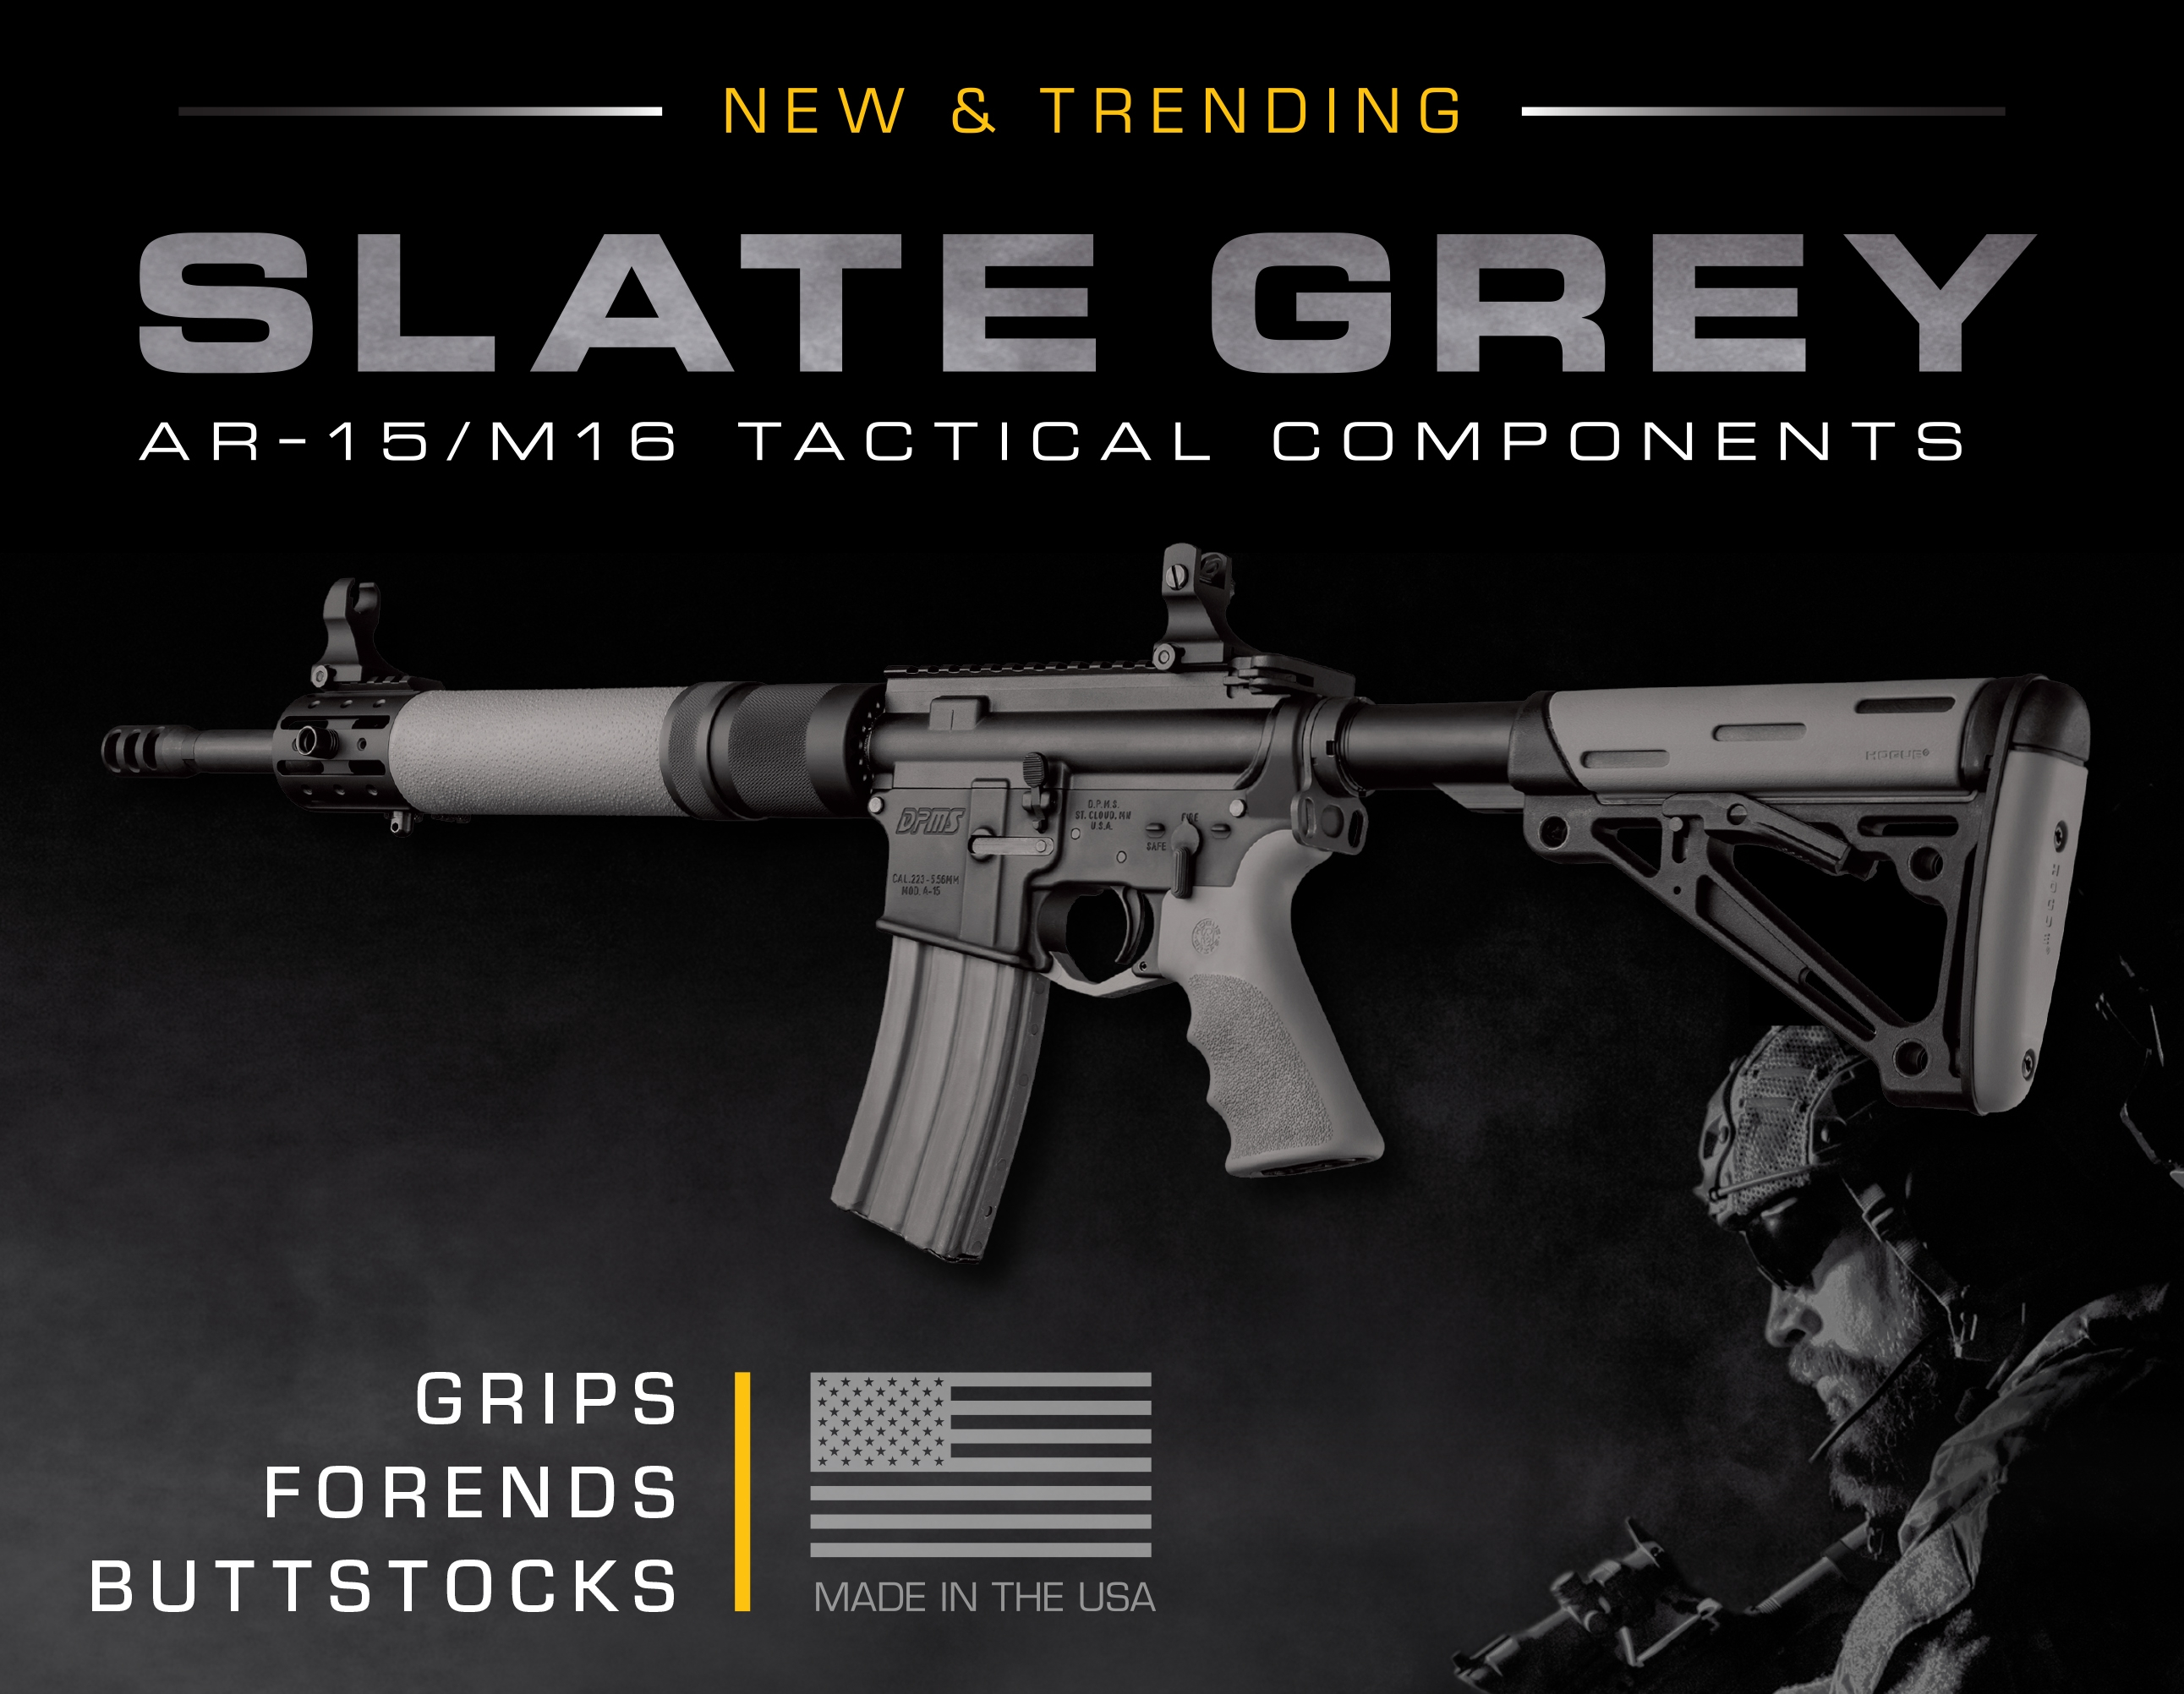 Slate Grey Tactical Components Display Image